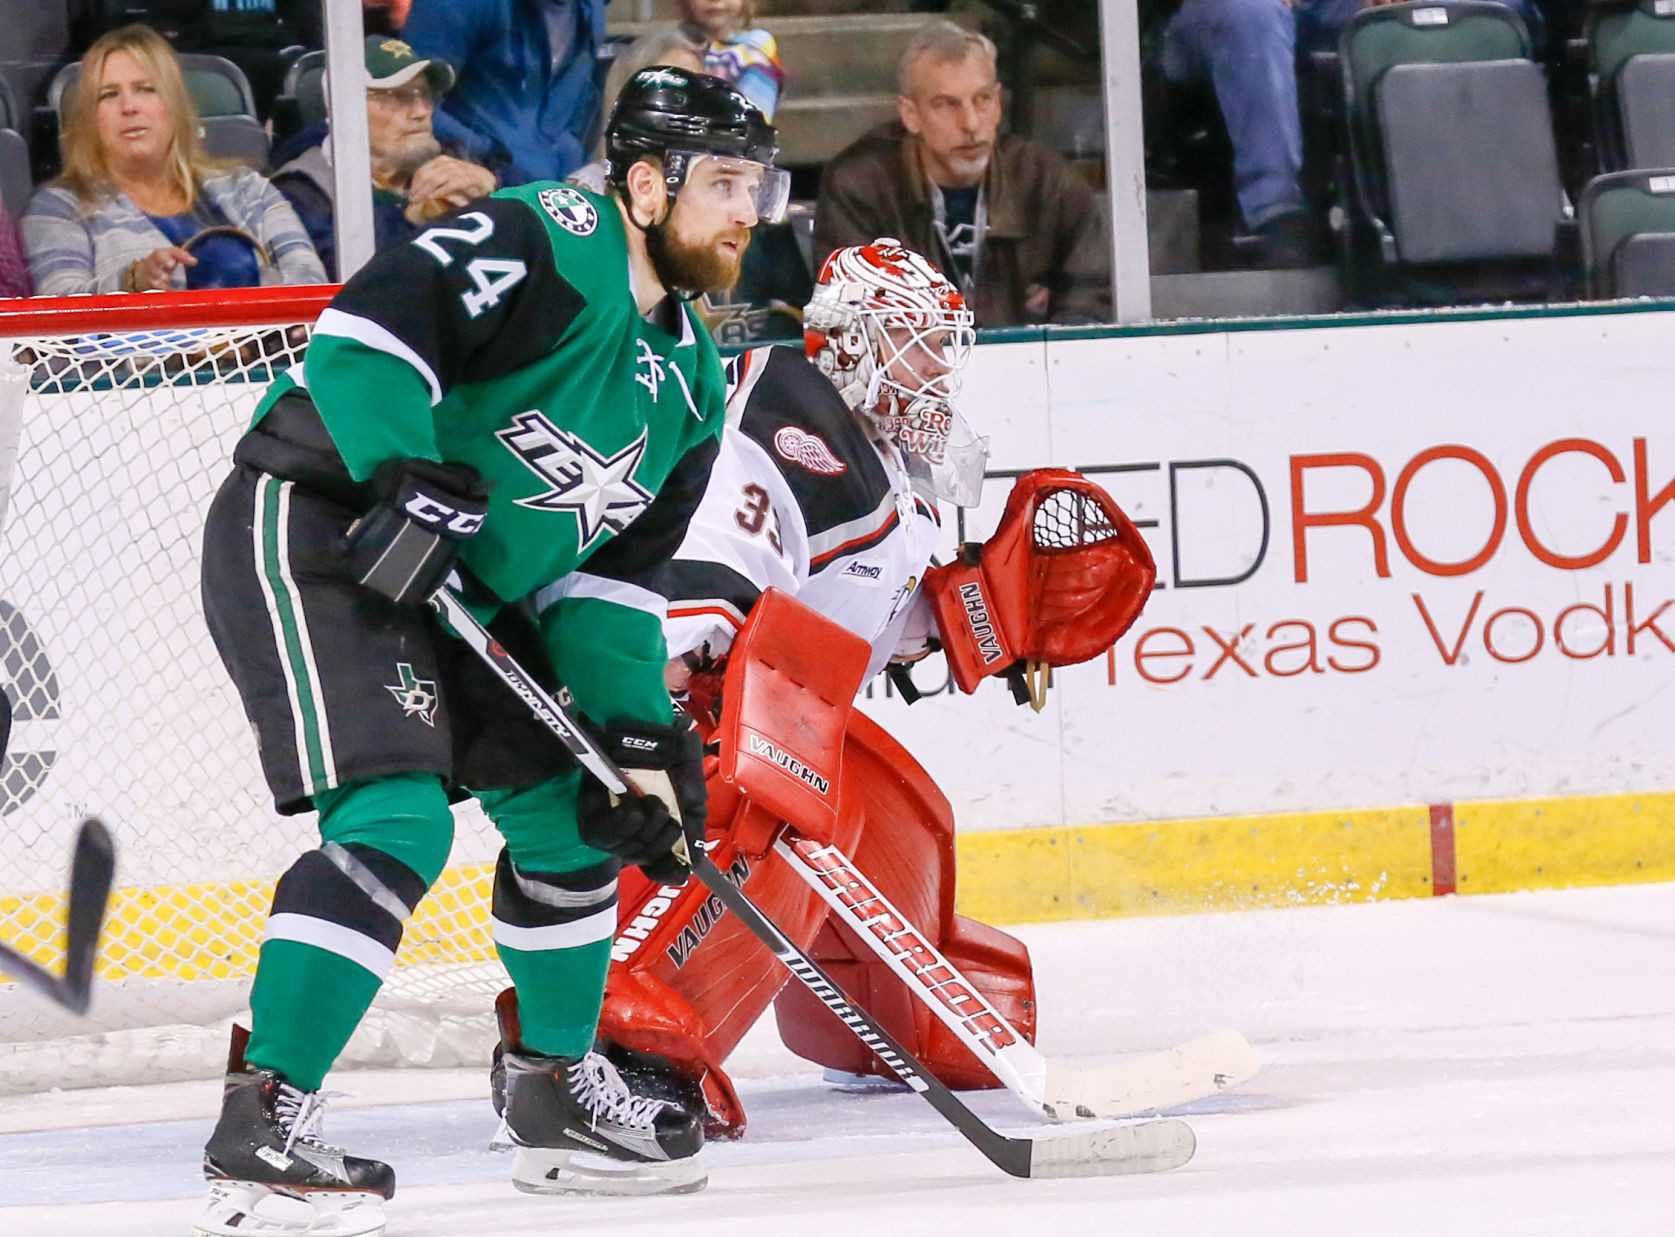 Brandon DiFazio, left, and the Texas Stars fell for the seventh time in the last eight games, losing 5-2 to the Western Conference-leading Grand Rapids Griffins Saturday night at H-E-B Center.